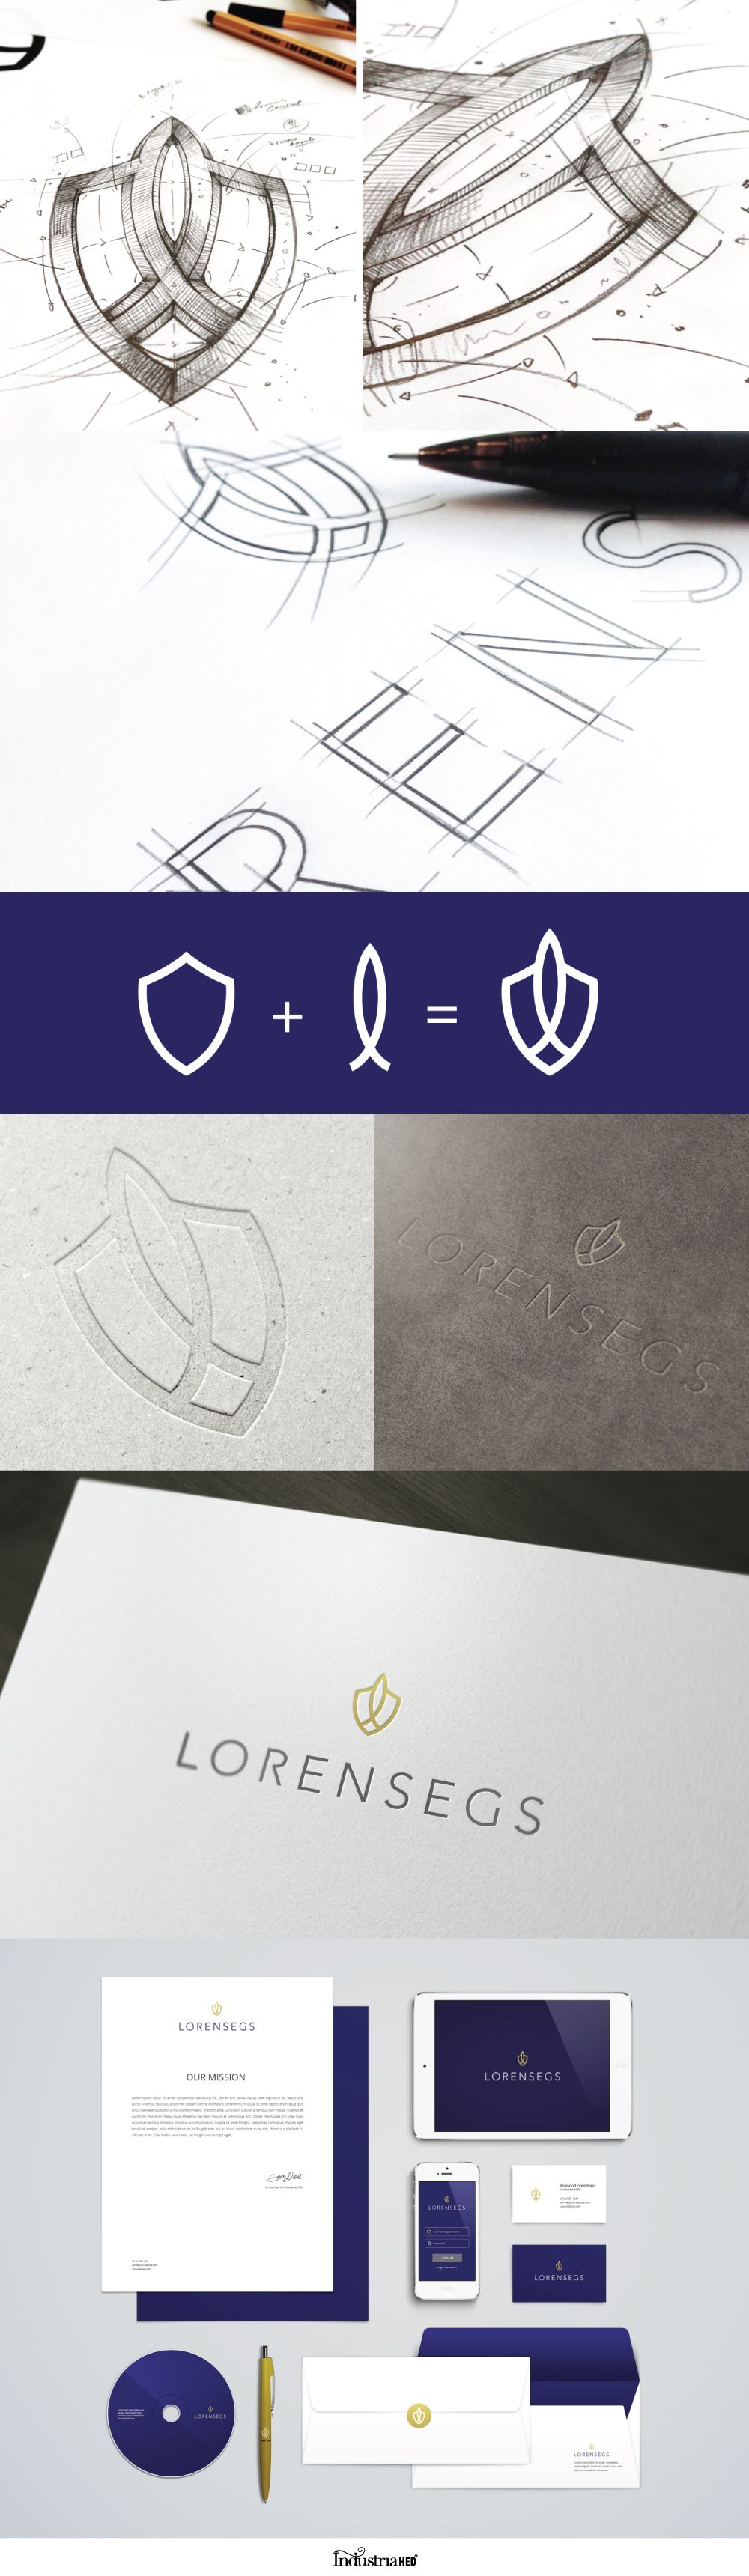 Lorensegs Insurance Company Identity By Industriahed Via